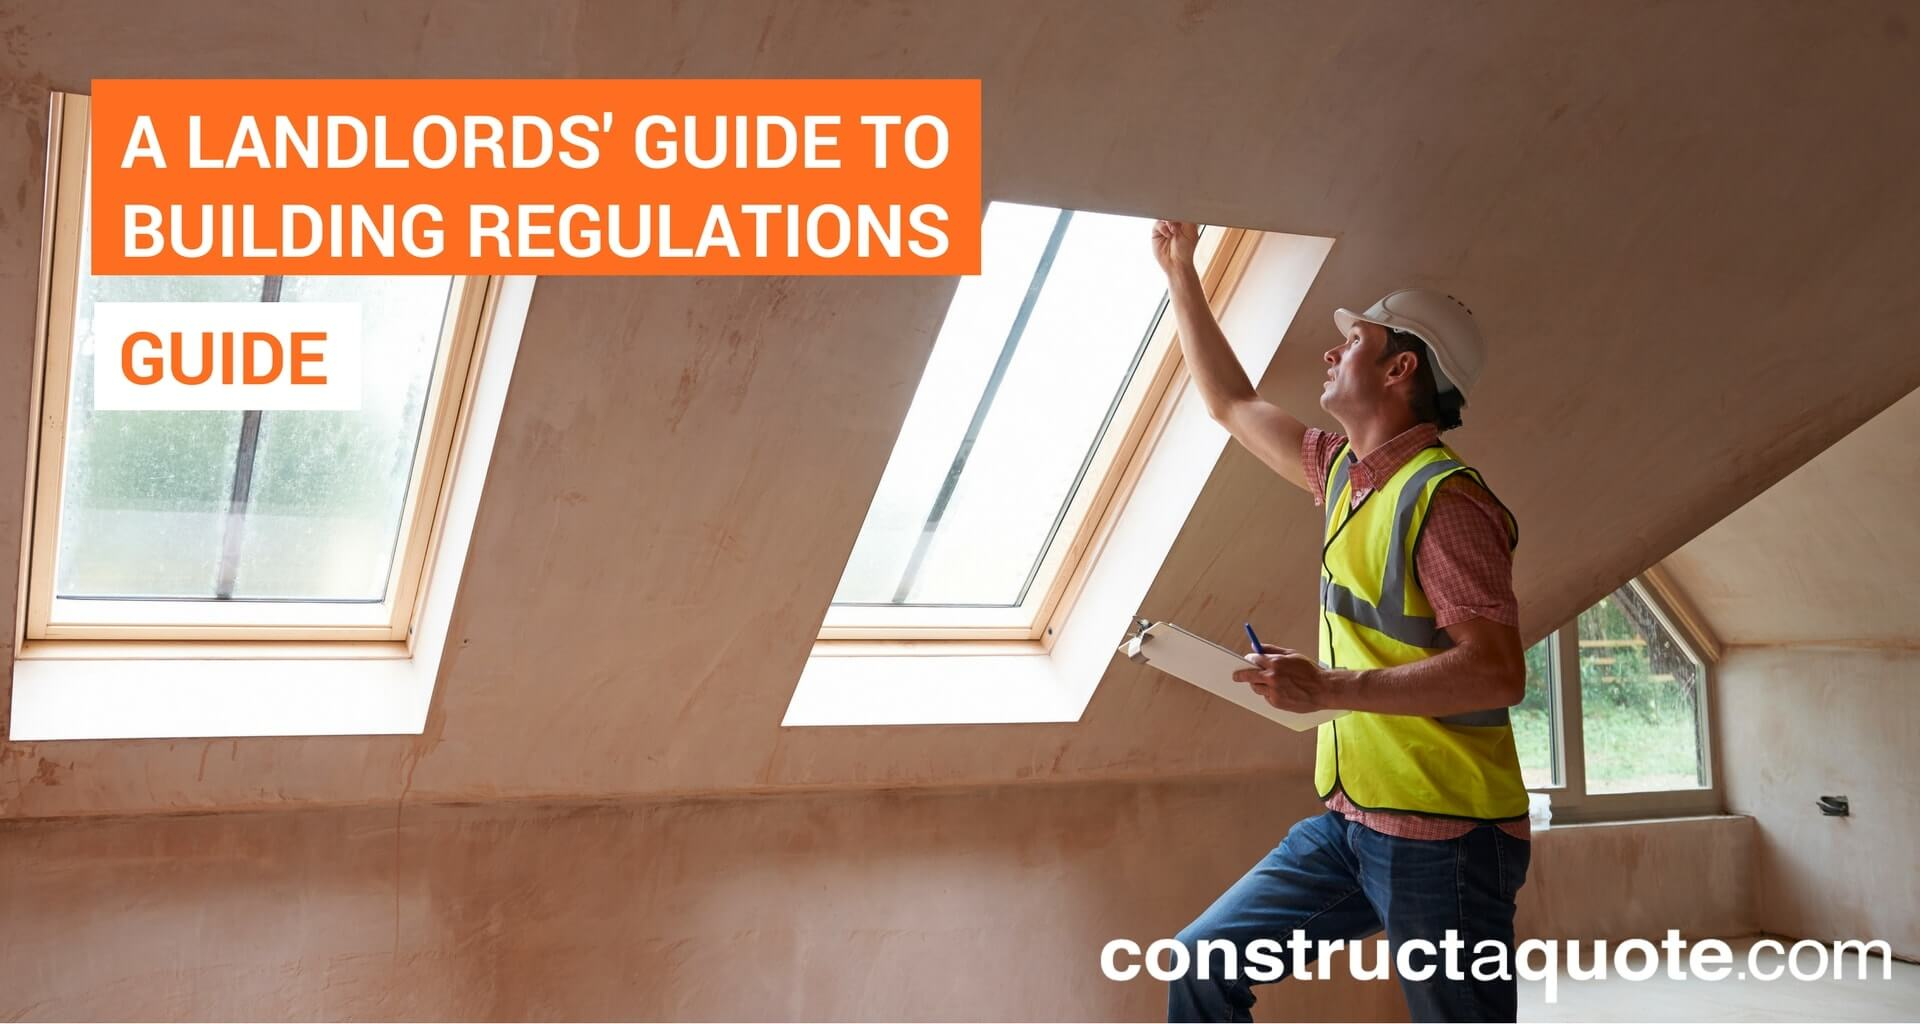 A Landlords' guide to building regulations